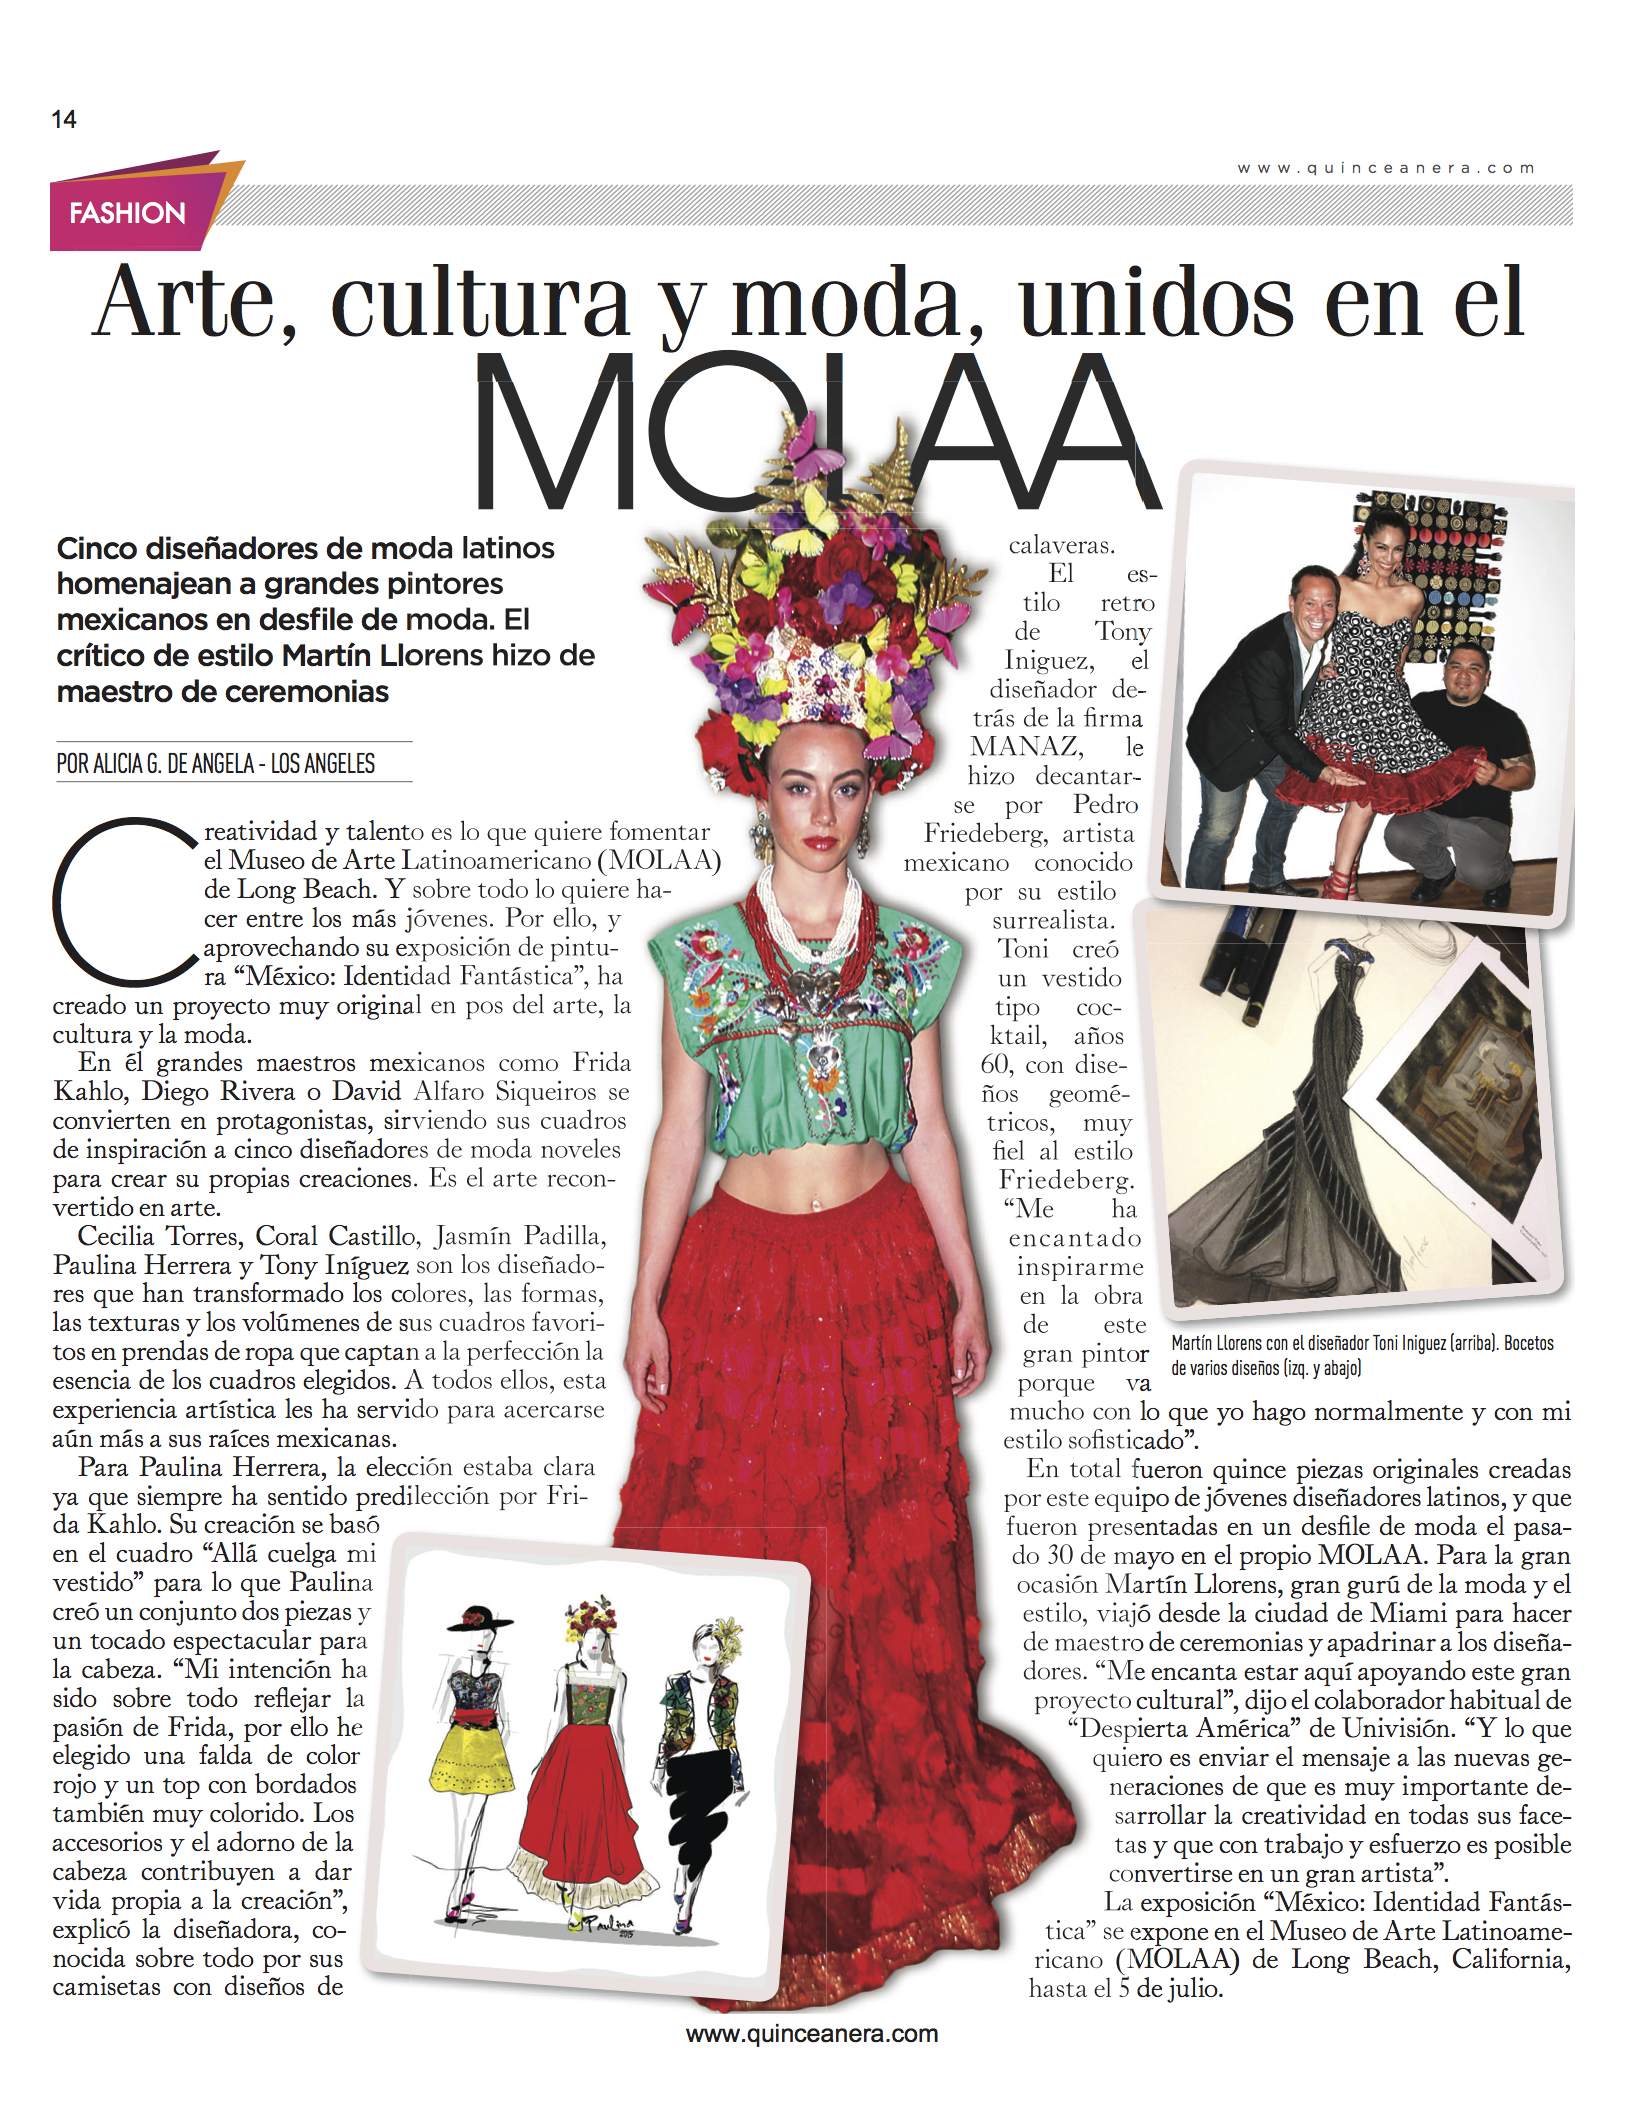 MOLAA Fashion show article Arte, Cultura Moda